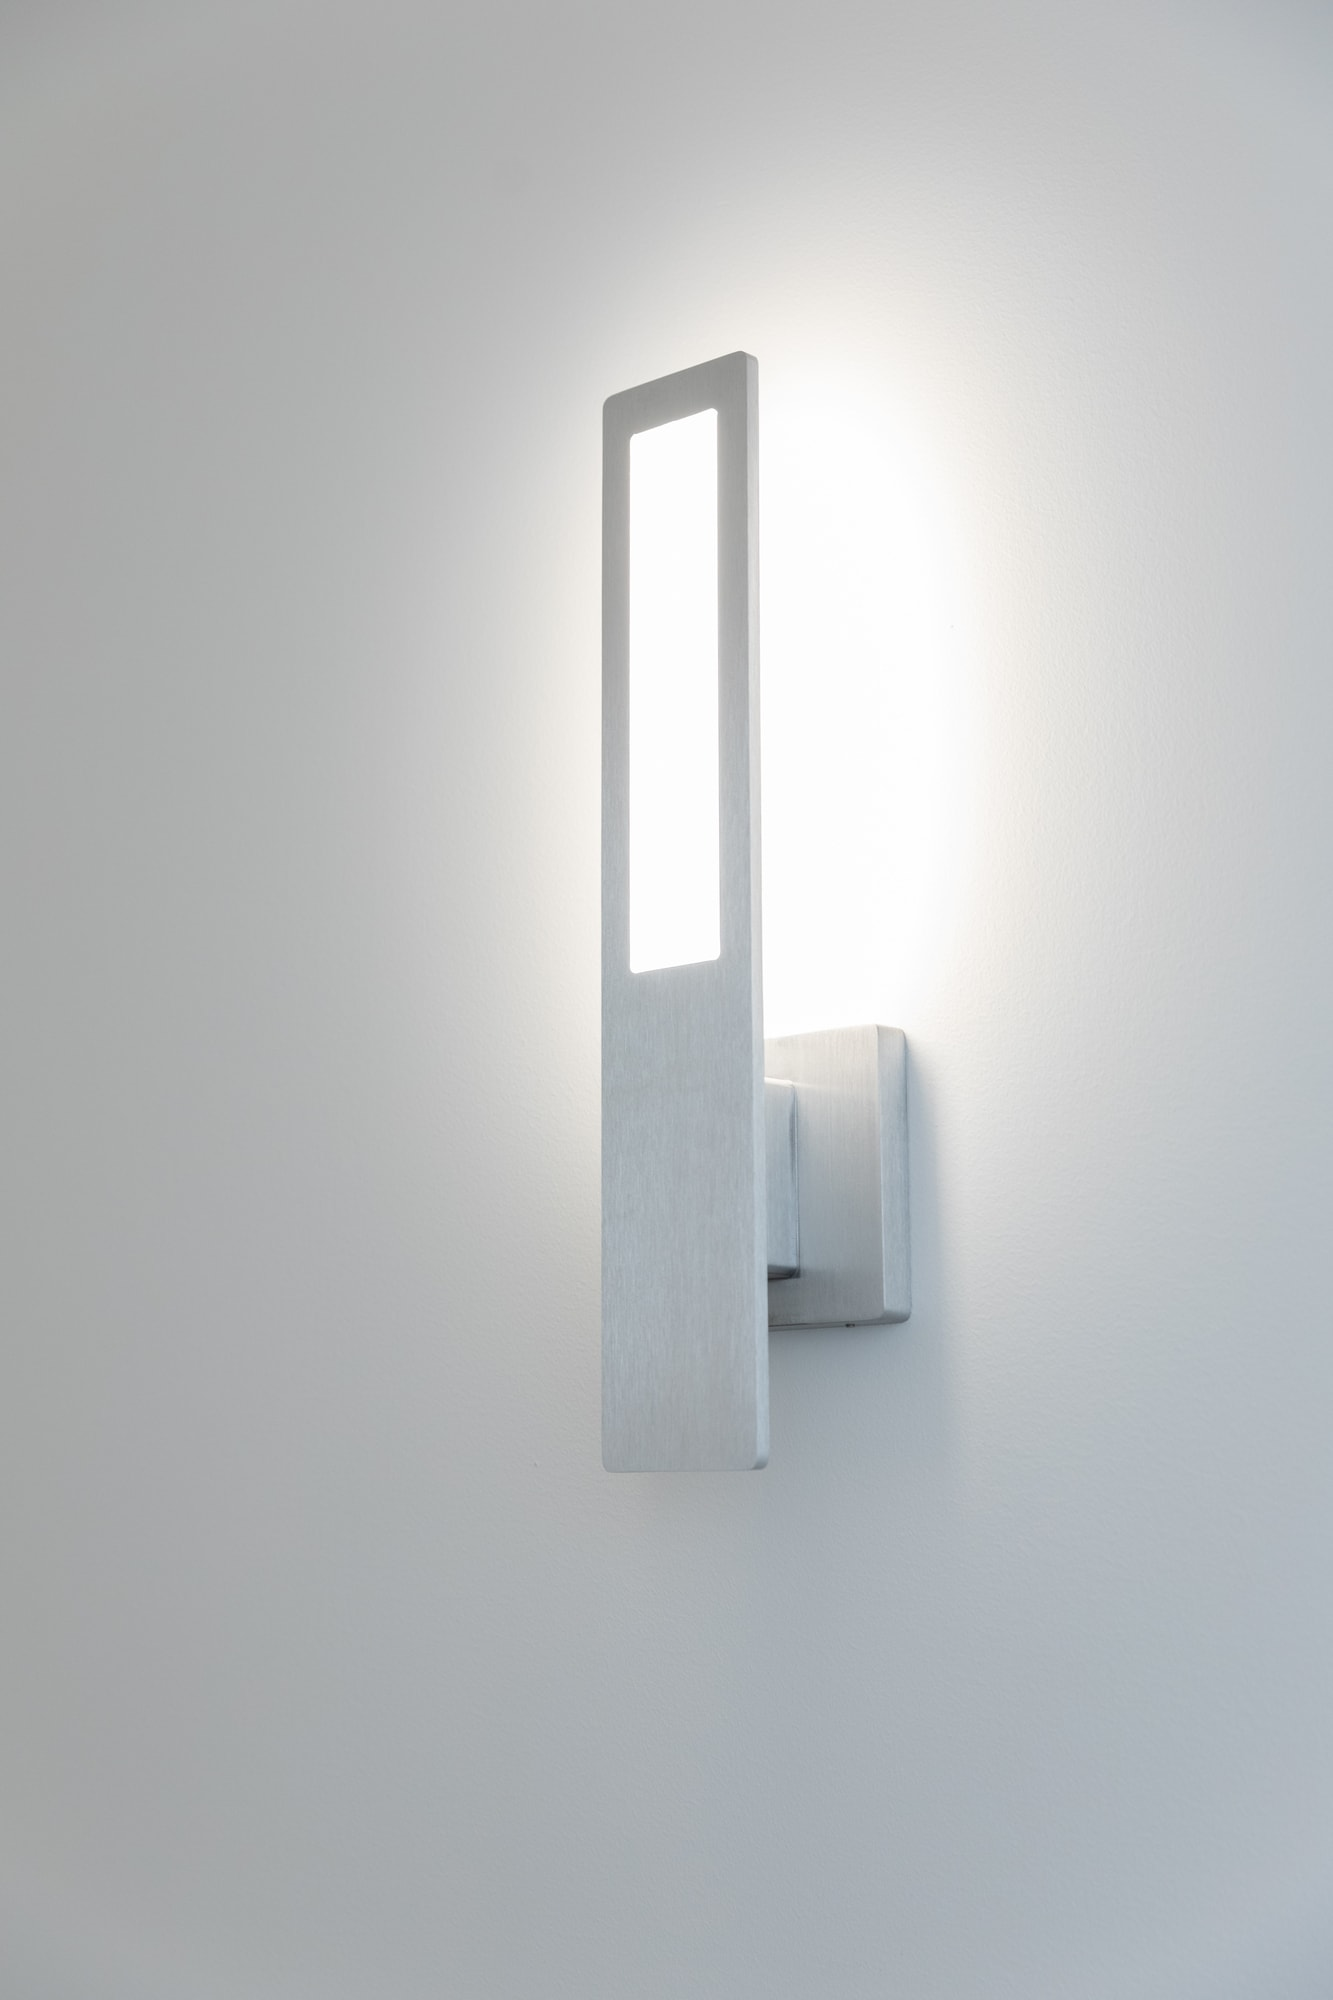 Acuity Brands´ OLED wall sconce Nomi